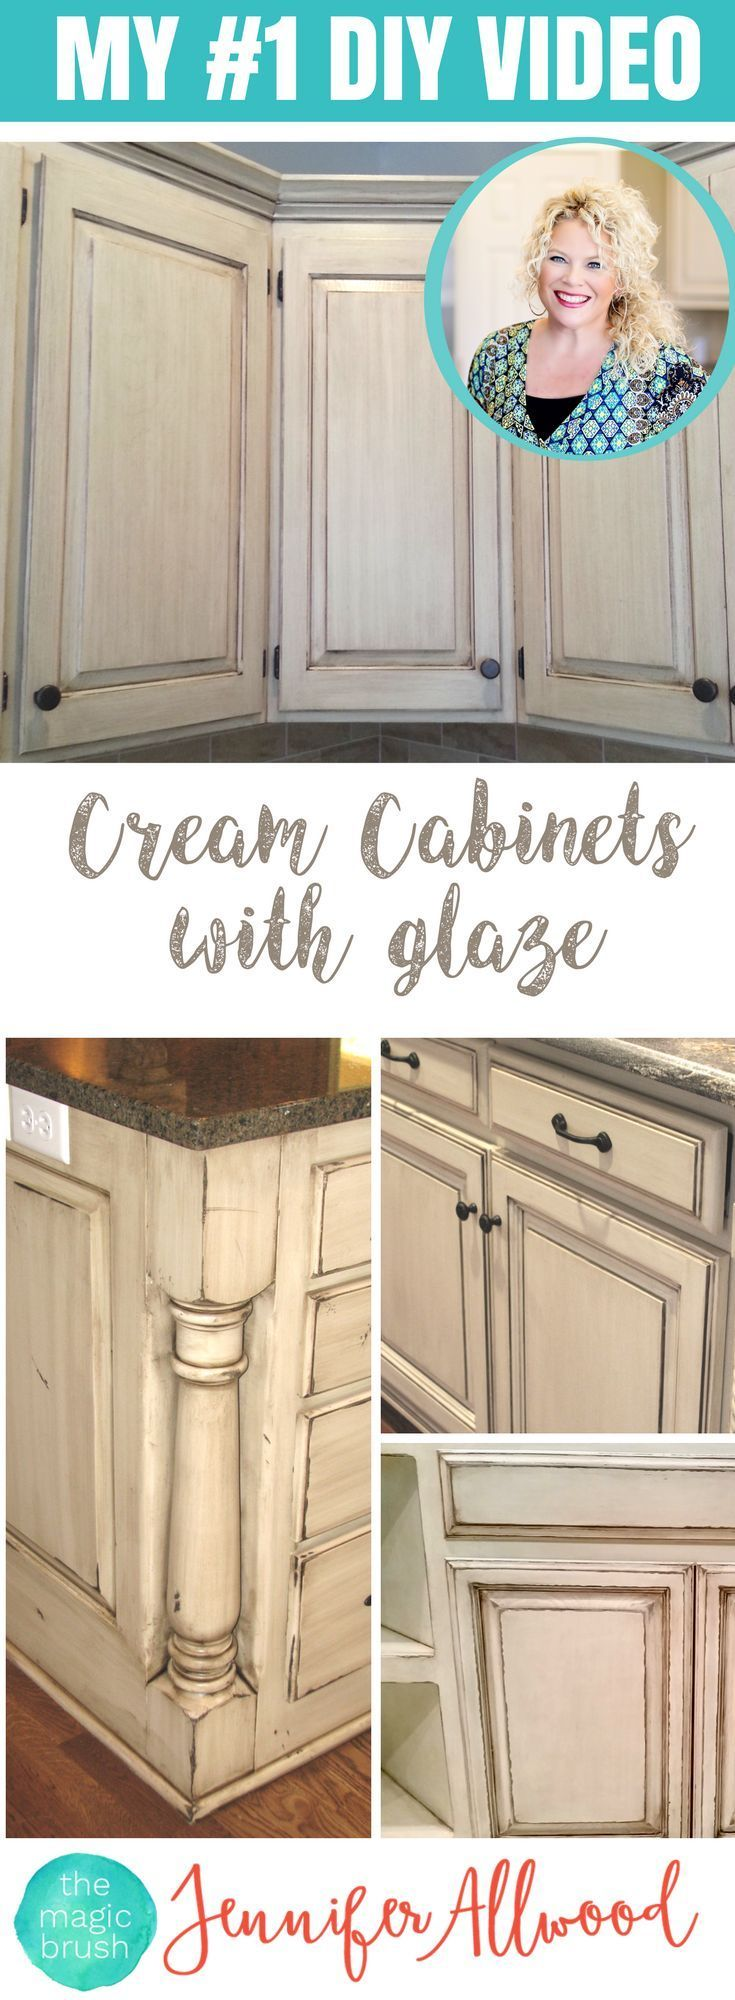 Best 25+ Kitchen Cabinet Redo Ideas Only On Pinterest  Diy Kitchen Paint,  Kitchen Cupboard Redo And Diy Kitchen Cupboards